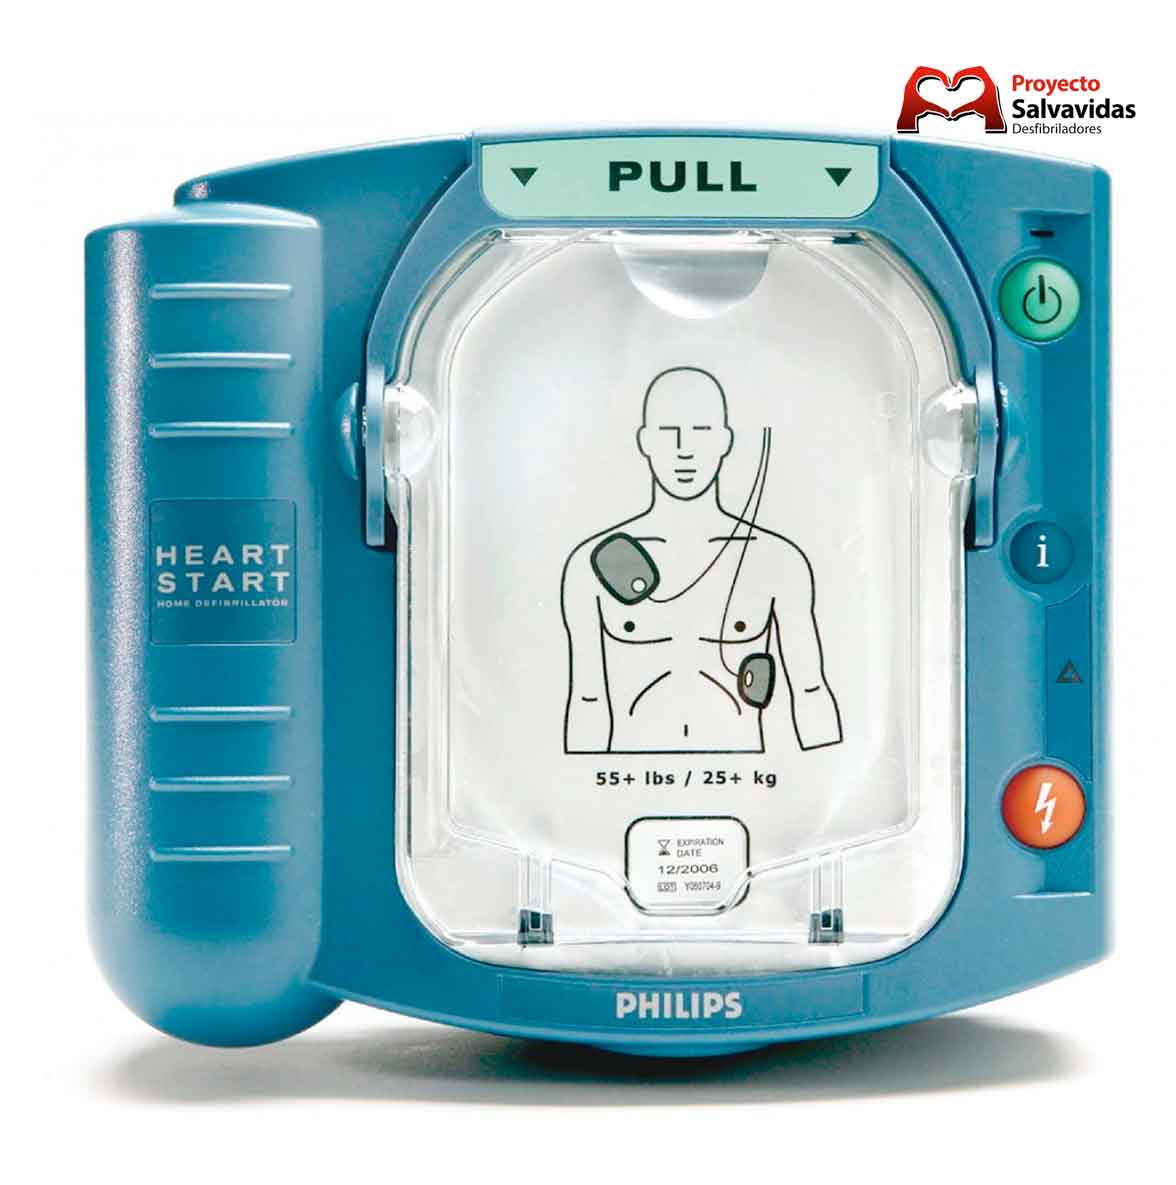 Philips HeartStart external defibrillator HS1 sale | Price and technical characteristics